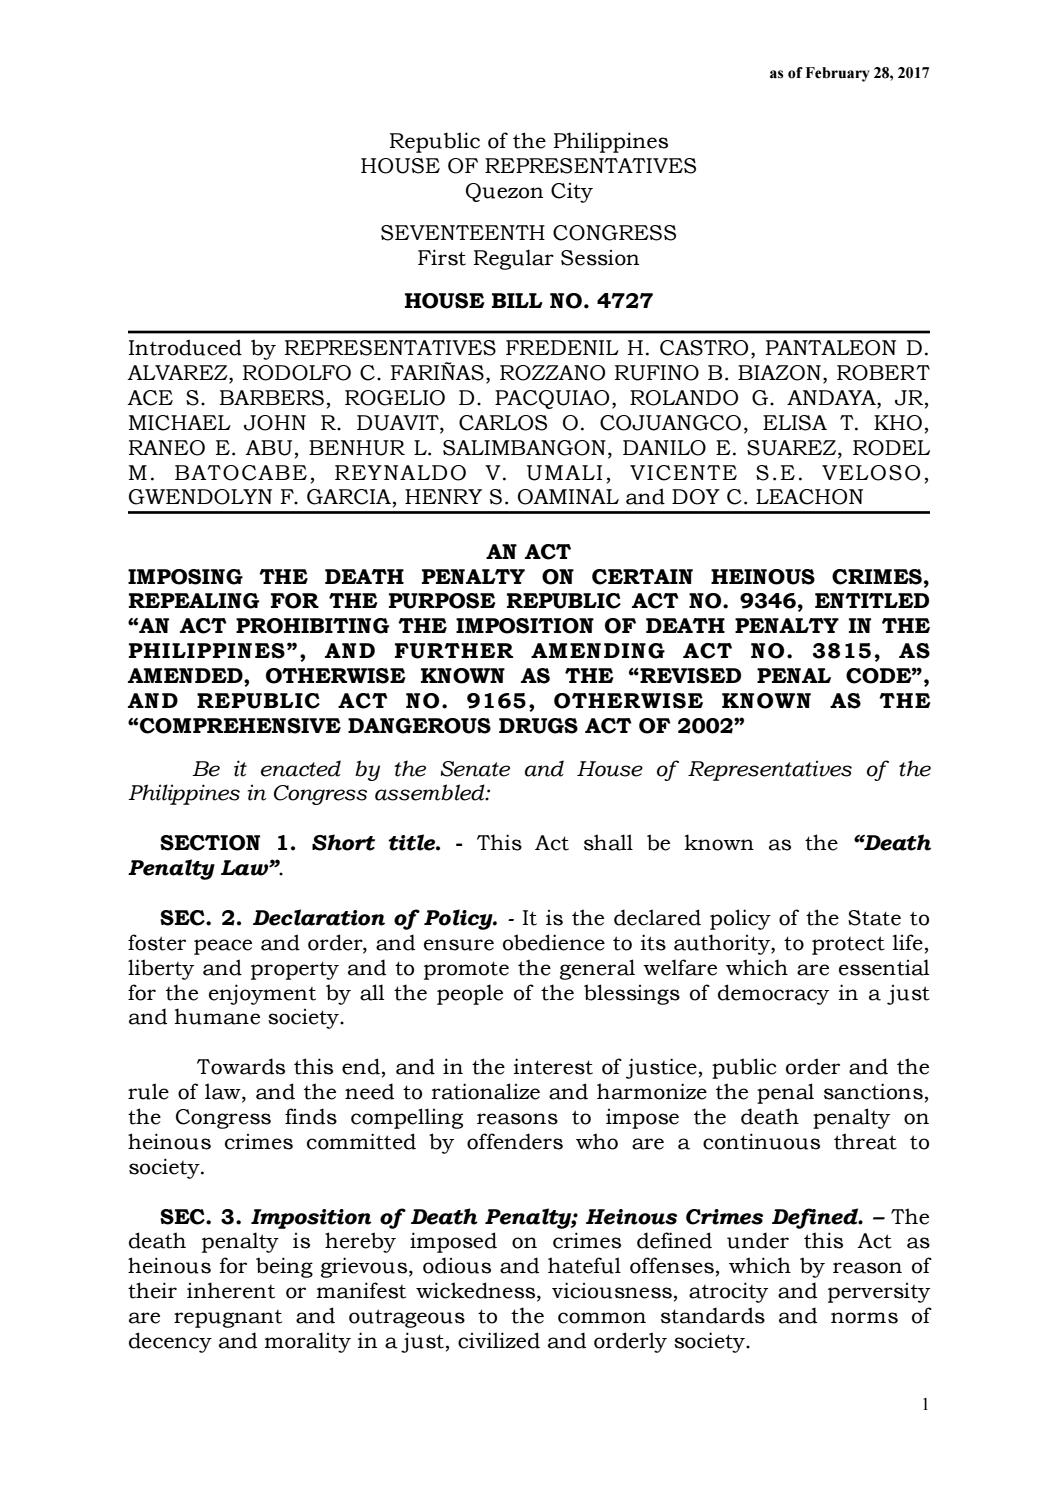 death penalty bill inches closer to approval on ash wednesday substitute bill death penalty as 29fc444c448267 1 month ago inquirerdotnet